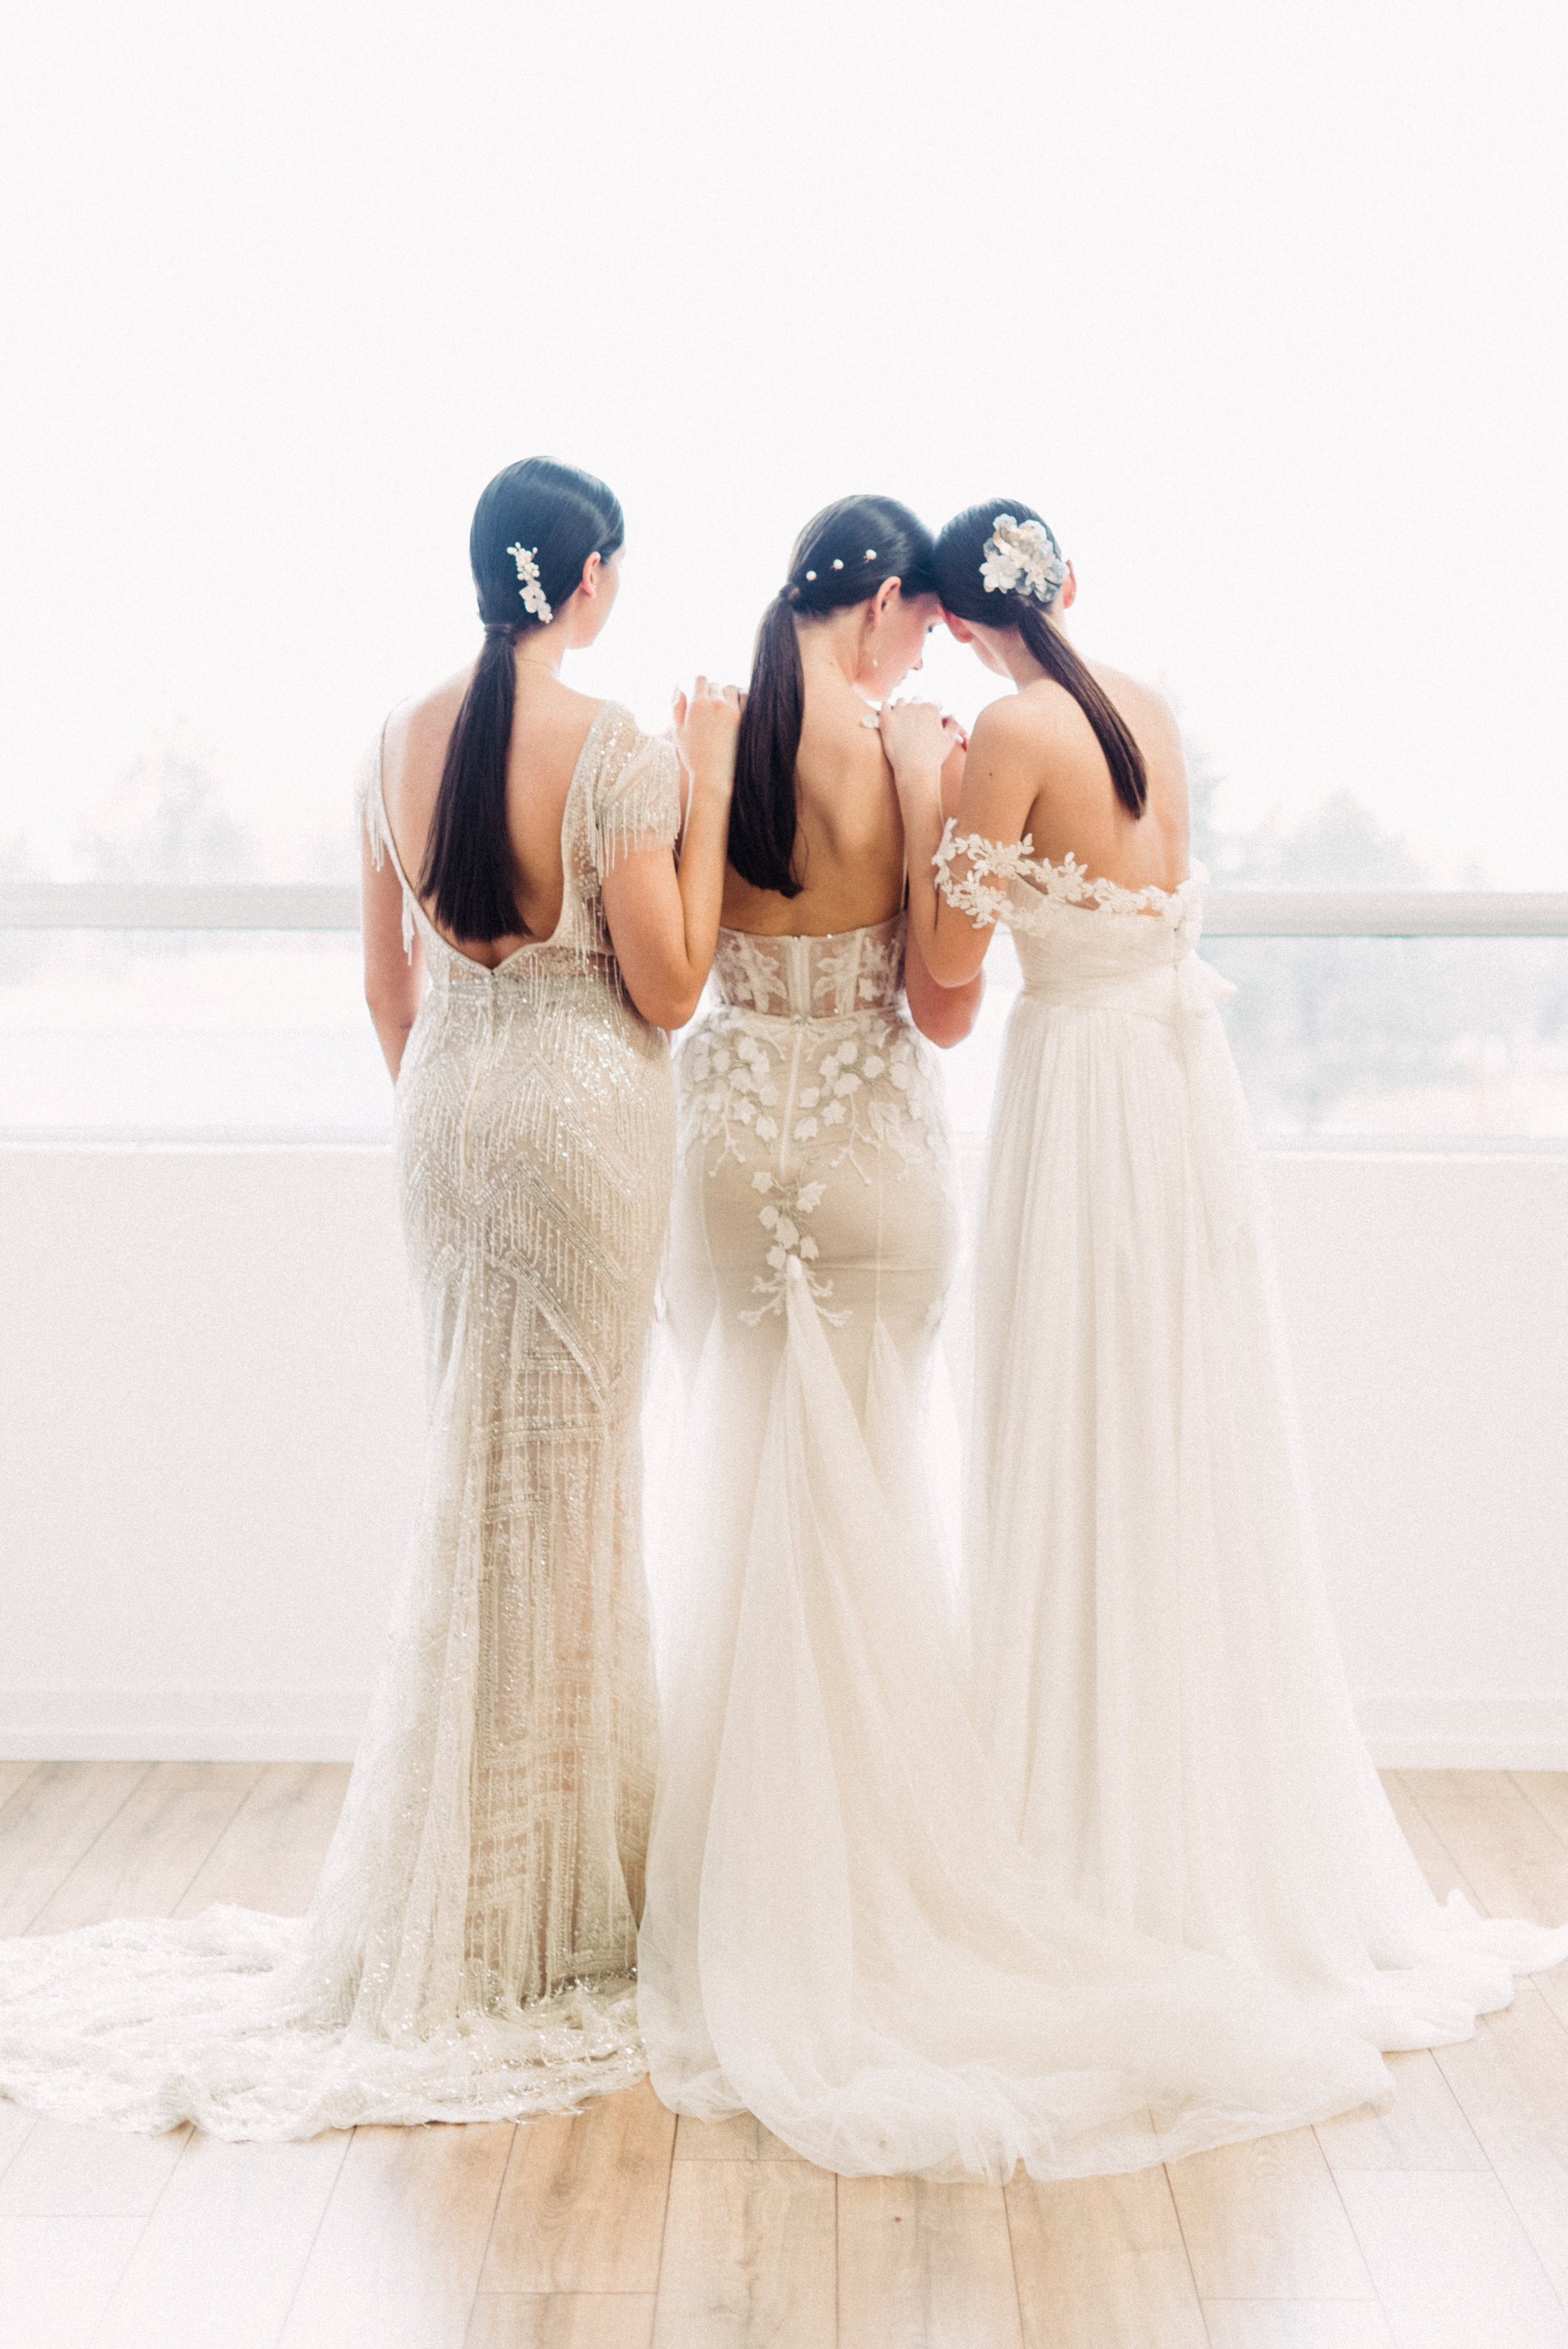 (Left to right) BERTA Privée style P08, BERTA Privée style P02, and Tatyana Merenyuk style Marlene